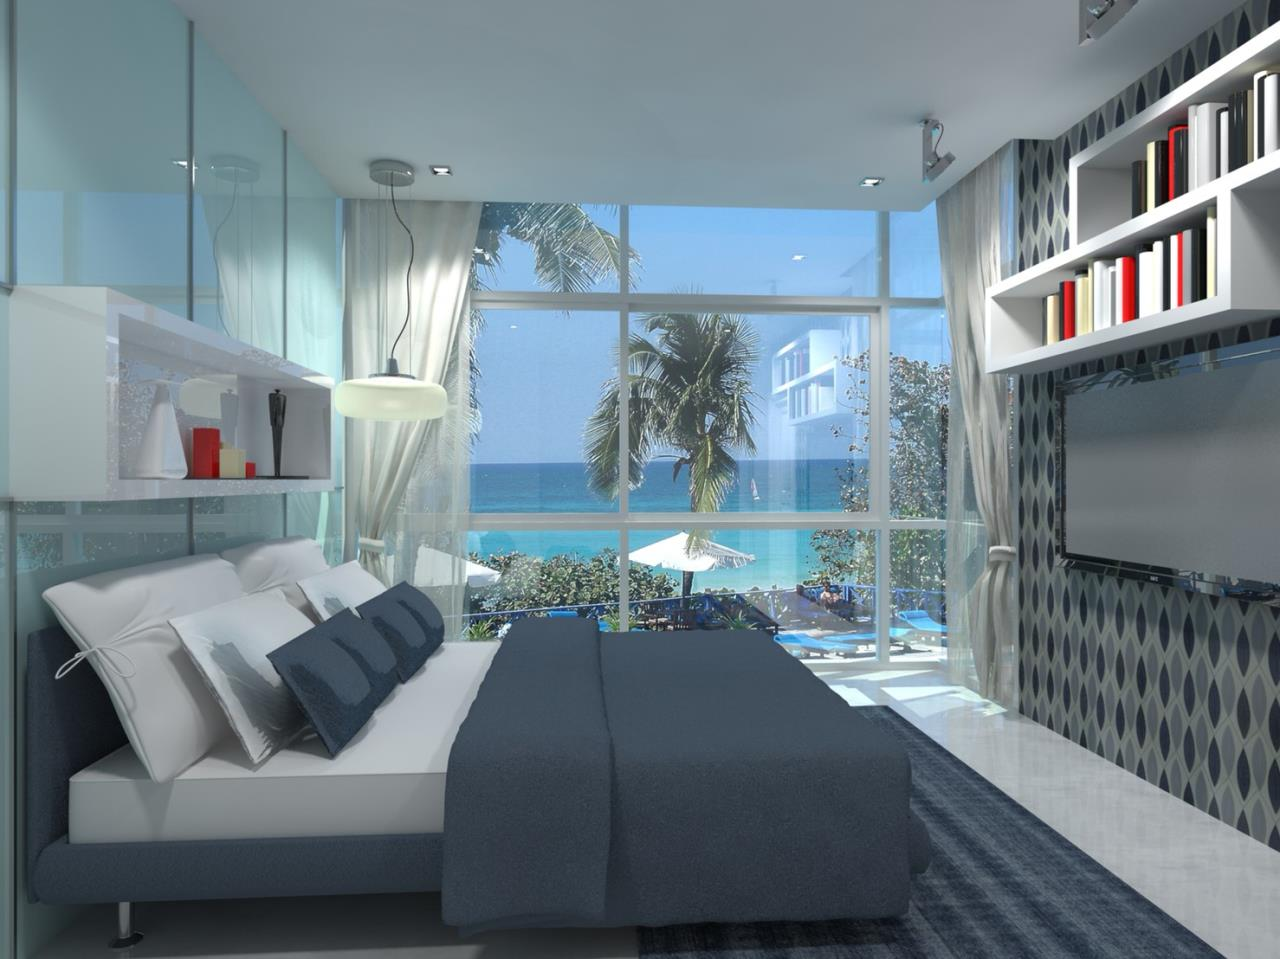 Signature Realty ( Thailand ) Co Ltd Agency's Furnished 2bedroom 65.75 sq.m condo with jacuzzi floor 2-11 at The Grand Jomtein Beach Pattaya 26